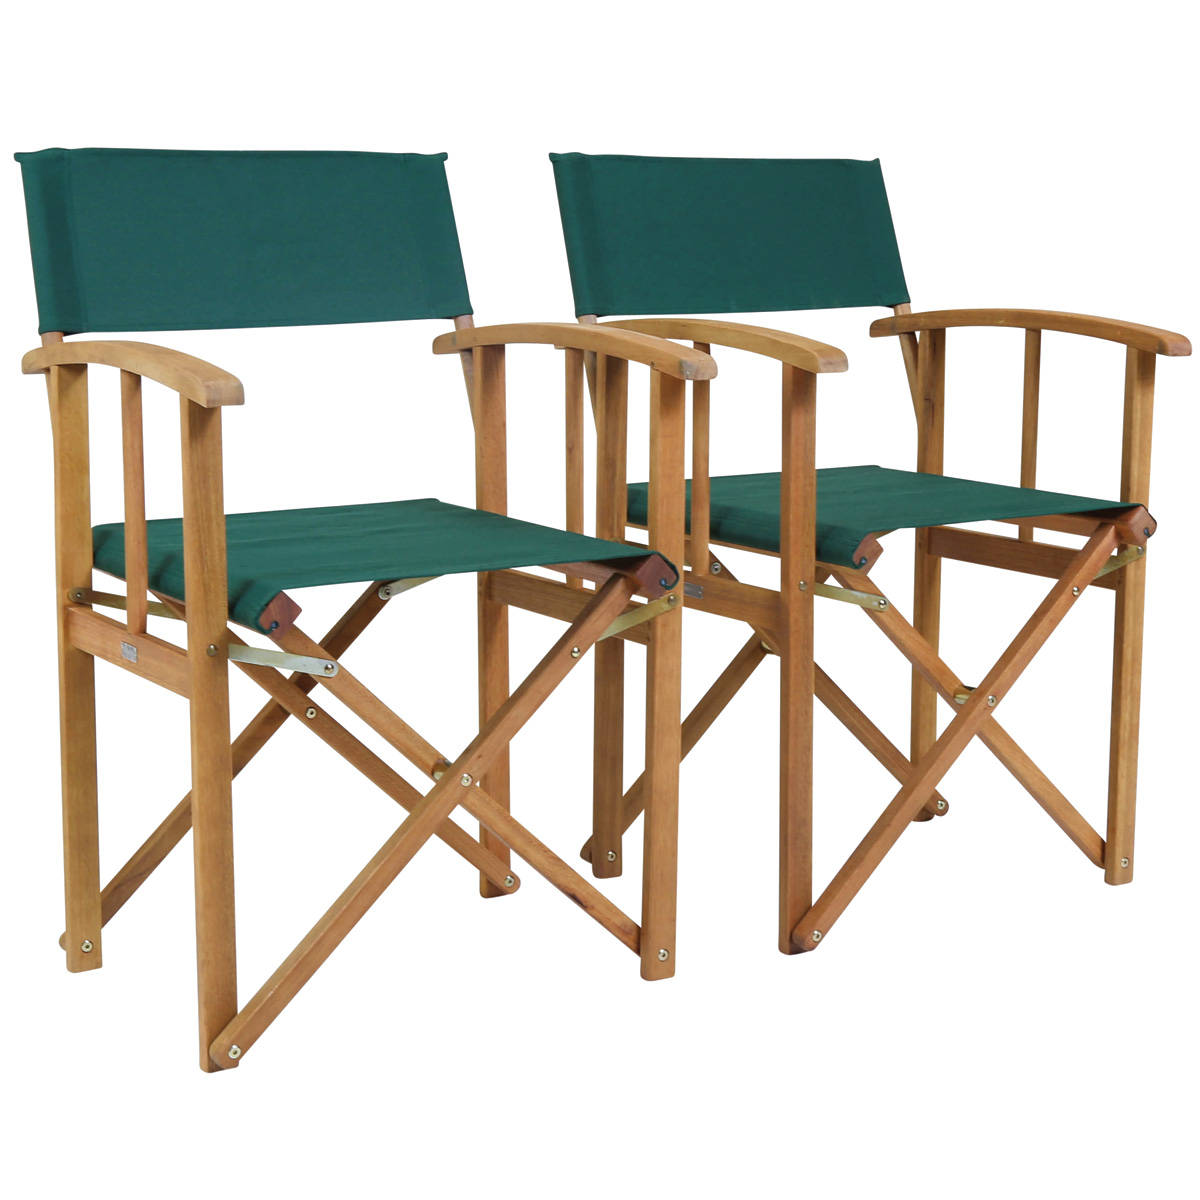 folding directors chairs chair rail beadboard paneling charles bentley pair of wooden